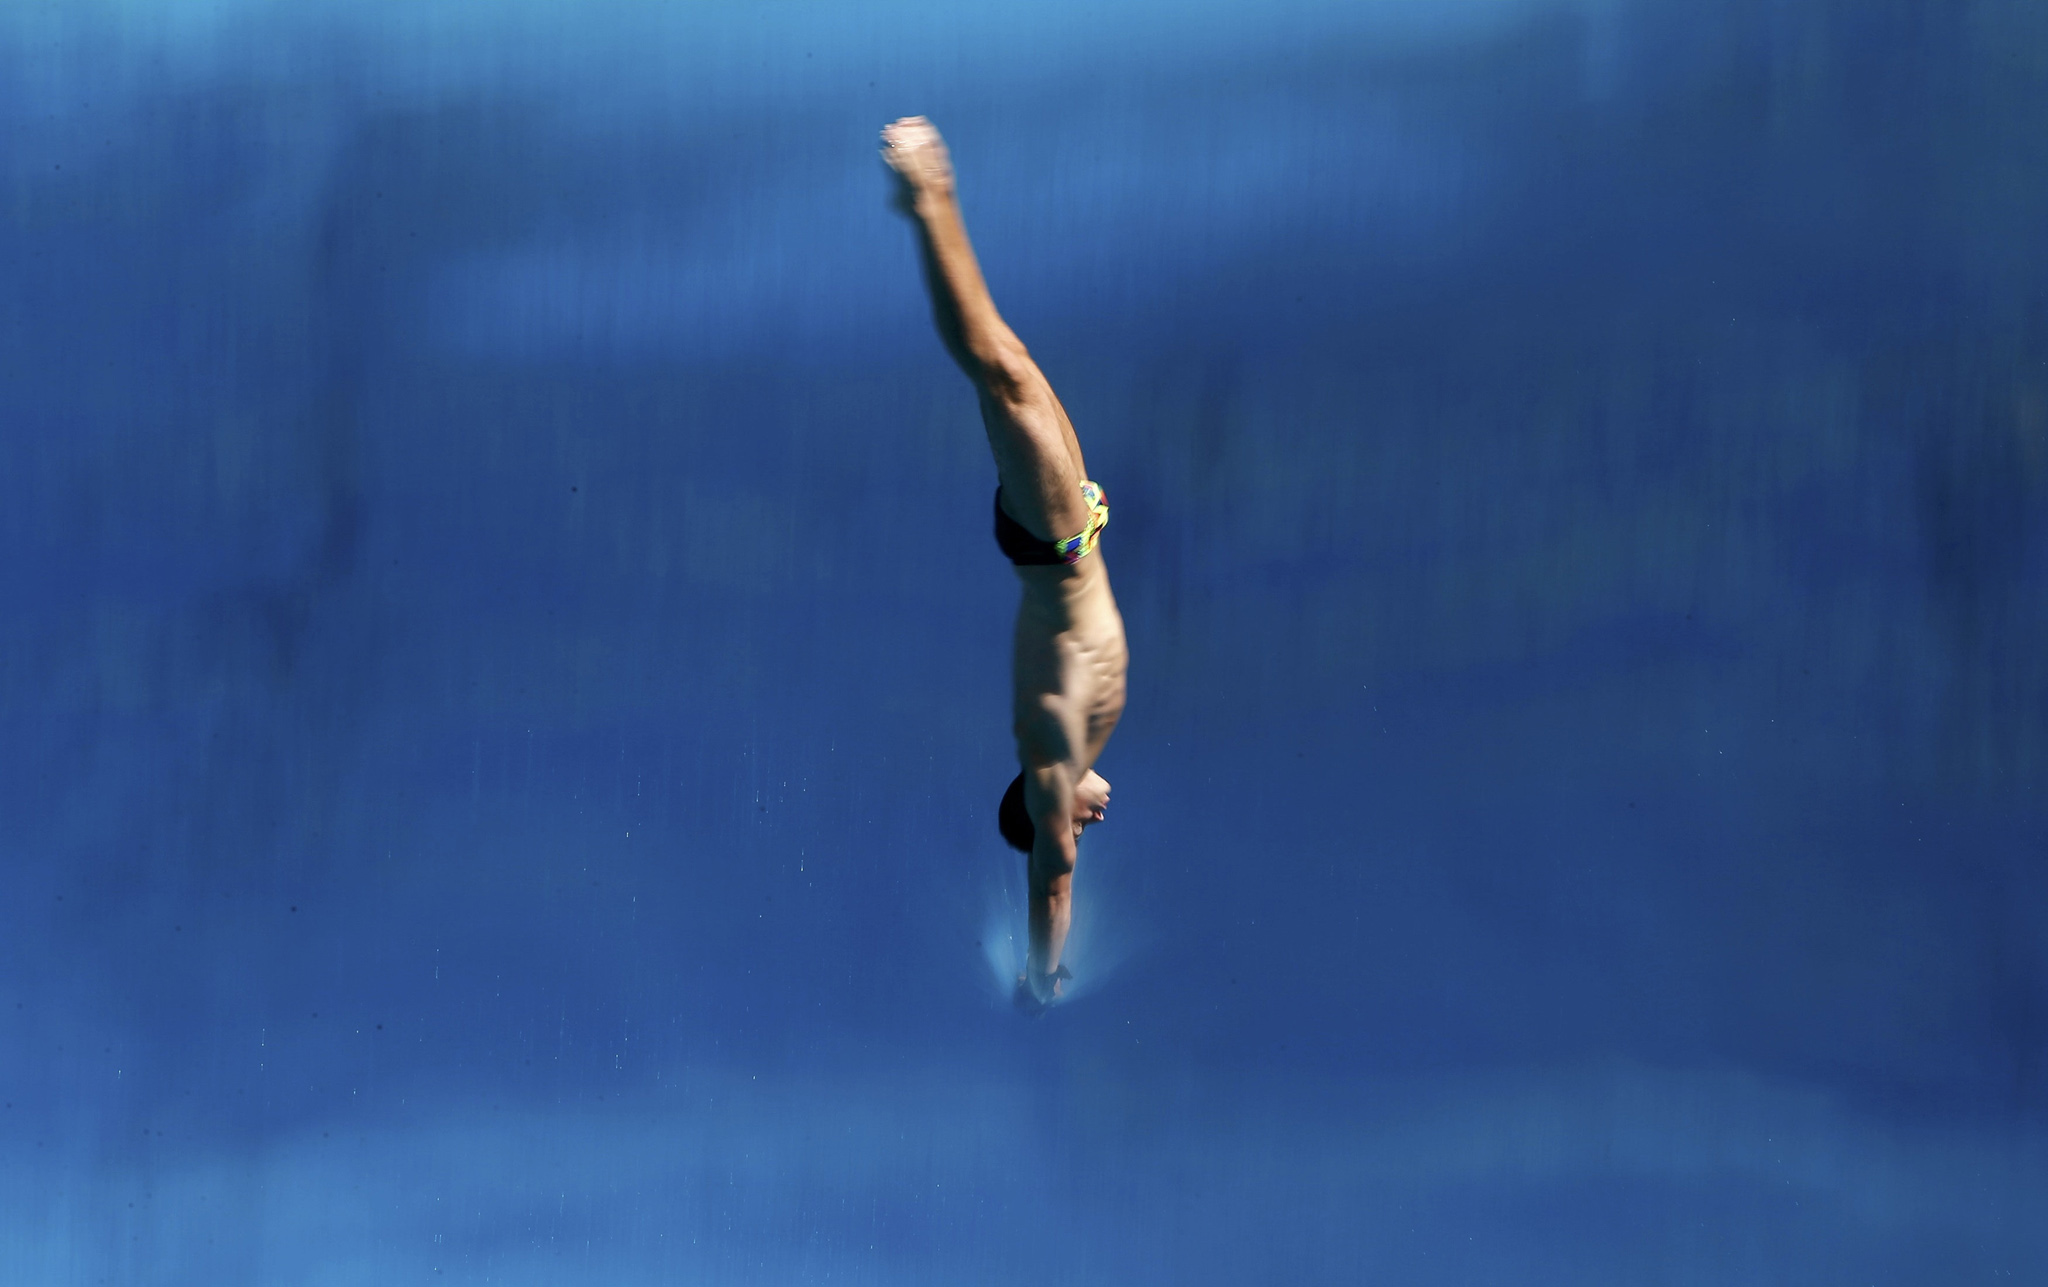 Rio Olympics - Olympic Park - Rio de Janeiro, Brazil - 01/08/2016. A divers practices at the Olympic diving venue.